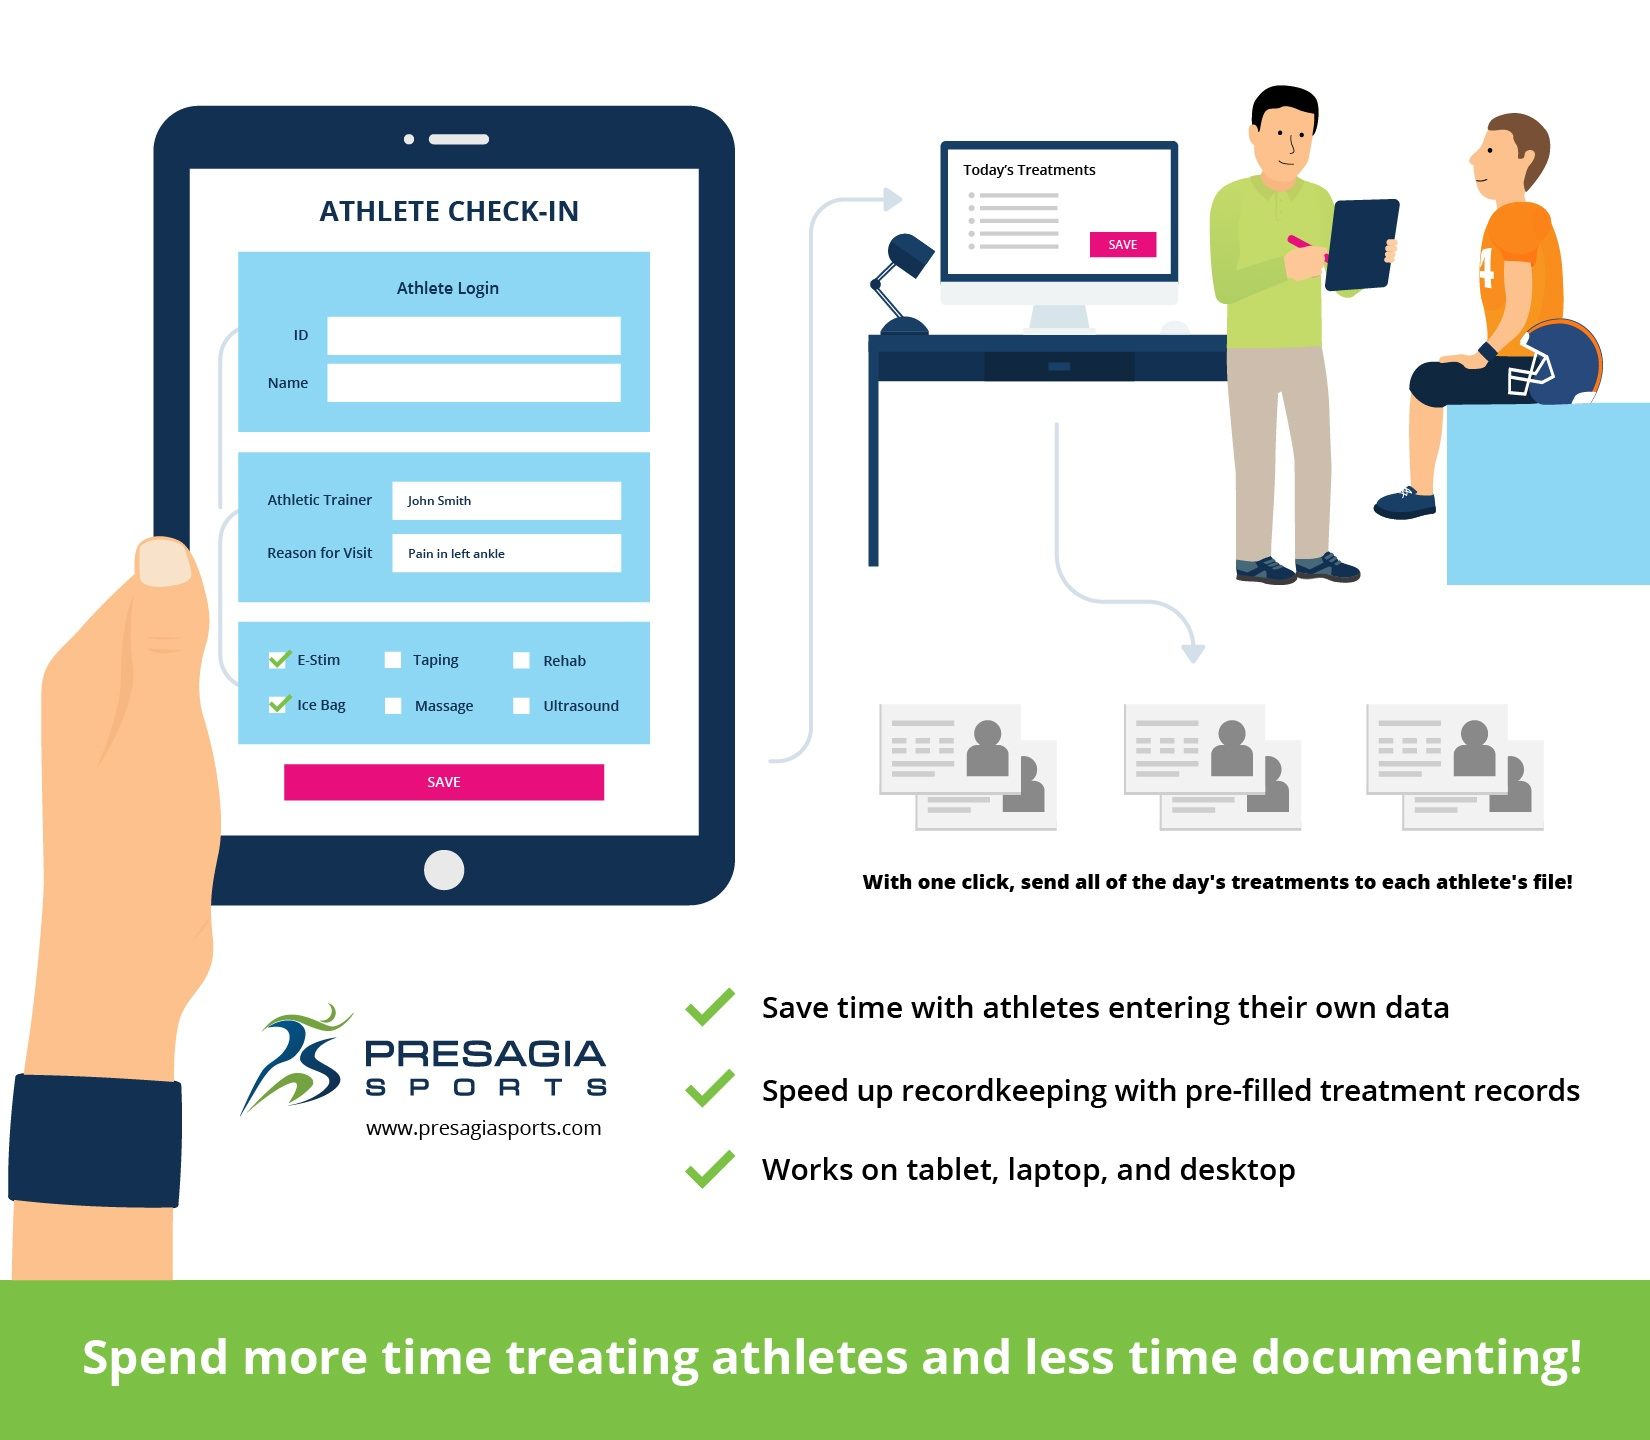 An infographiuc displaying how athletes can check-in for their treatment using Presagia Sports' Athlete Kiosk